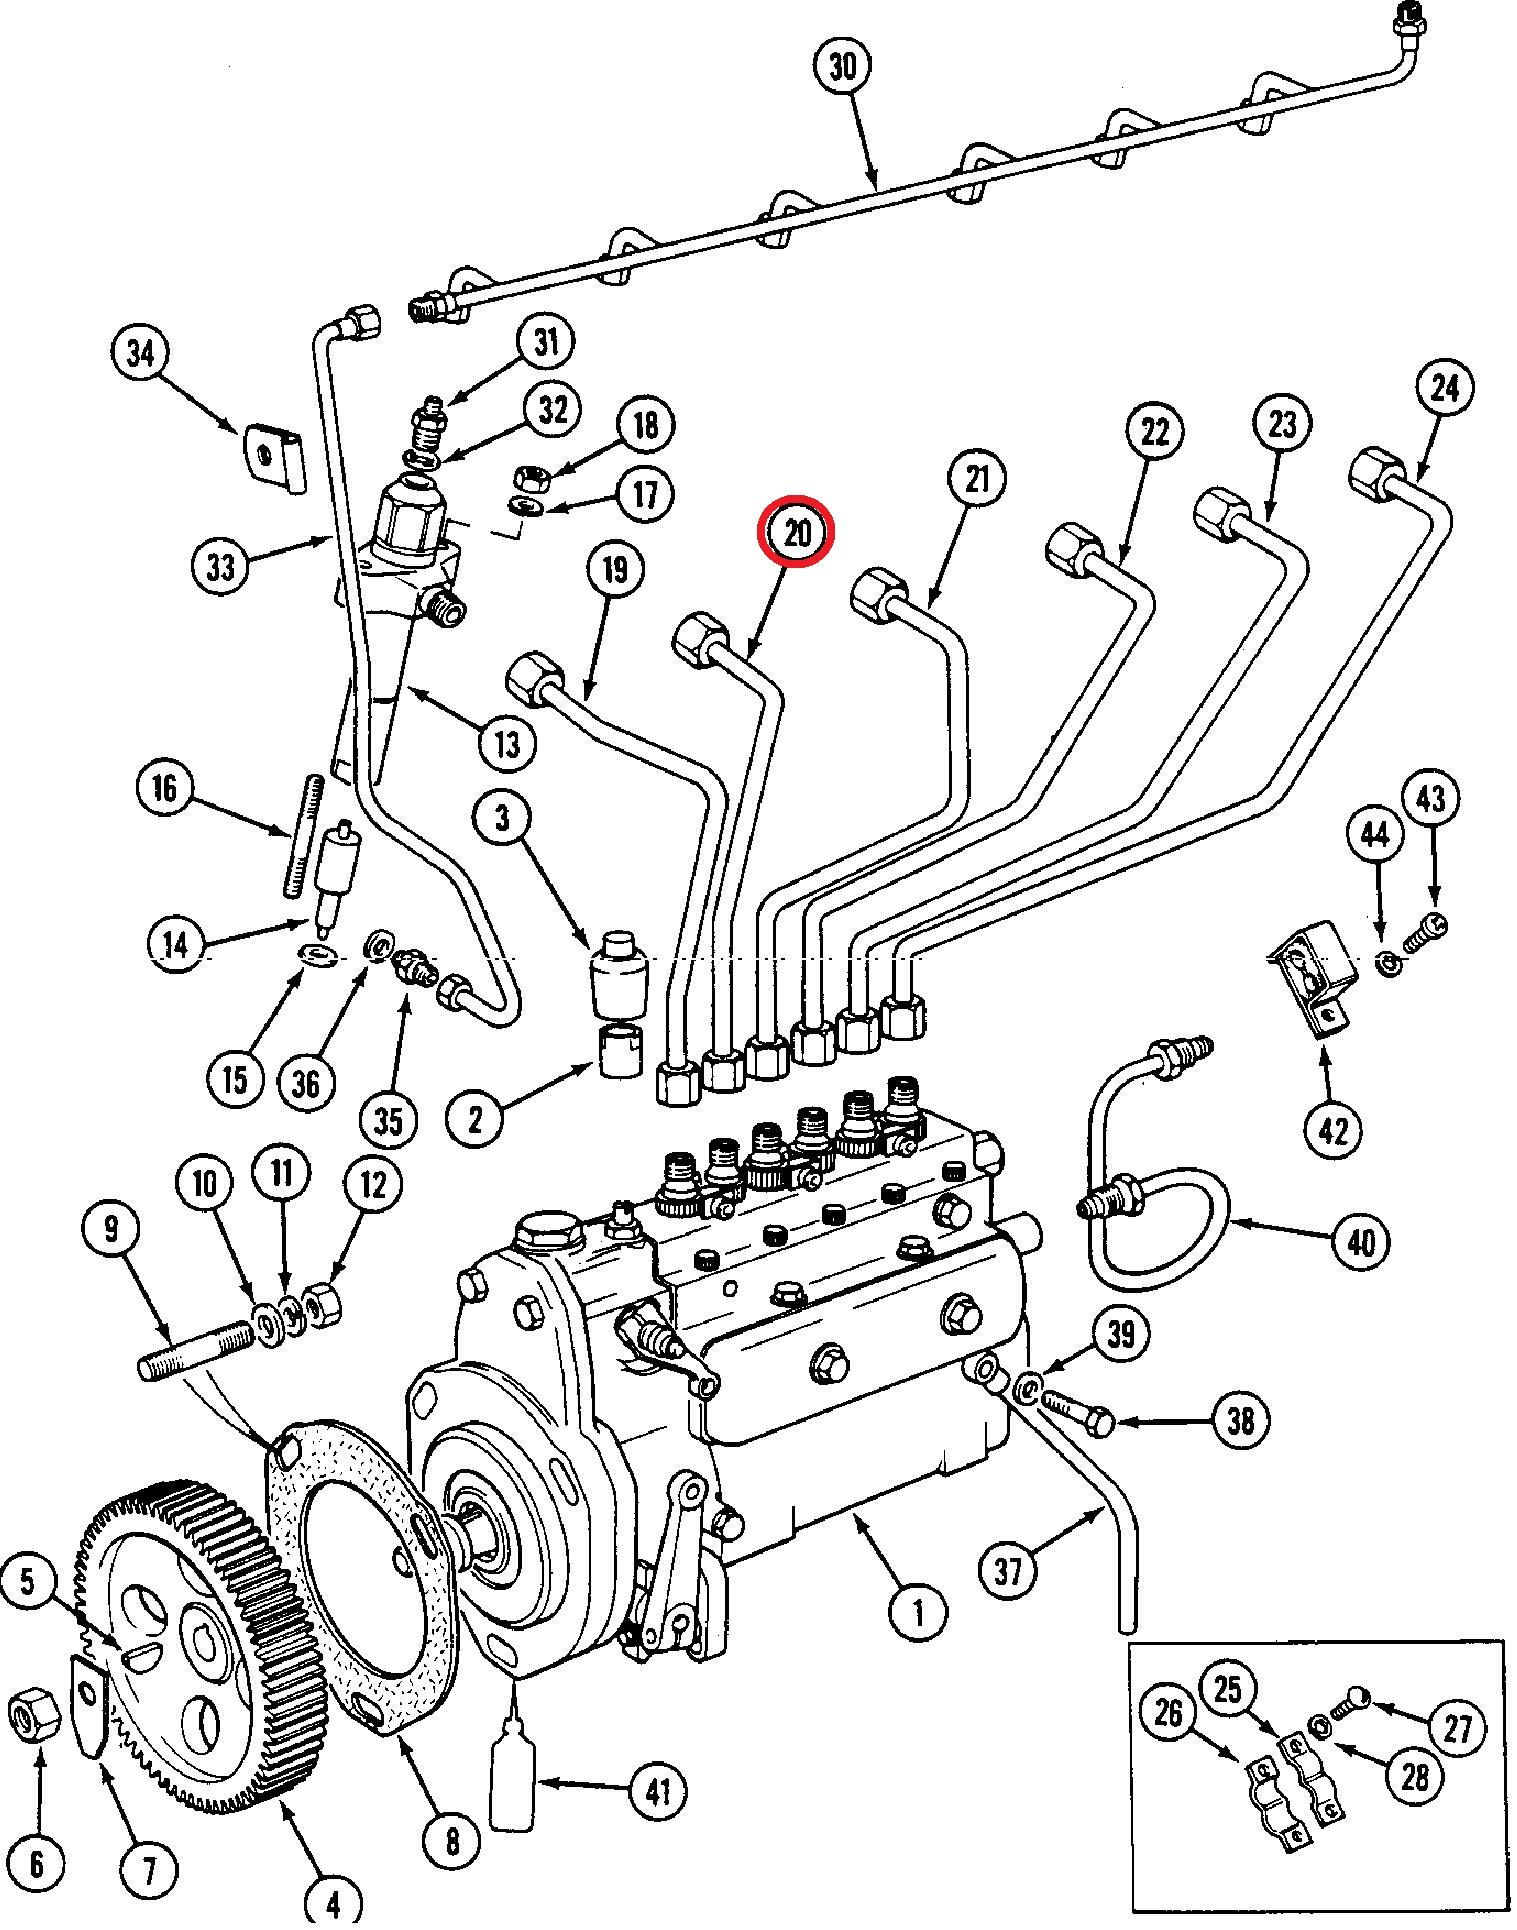 Ford 2310 Wiring Diagram - Wiring Diagrams List A Model For Ford Tractor Wiring Diagram on